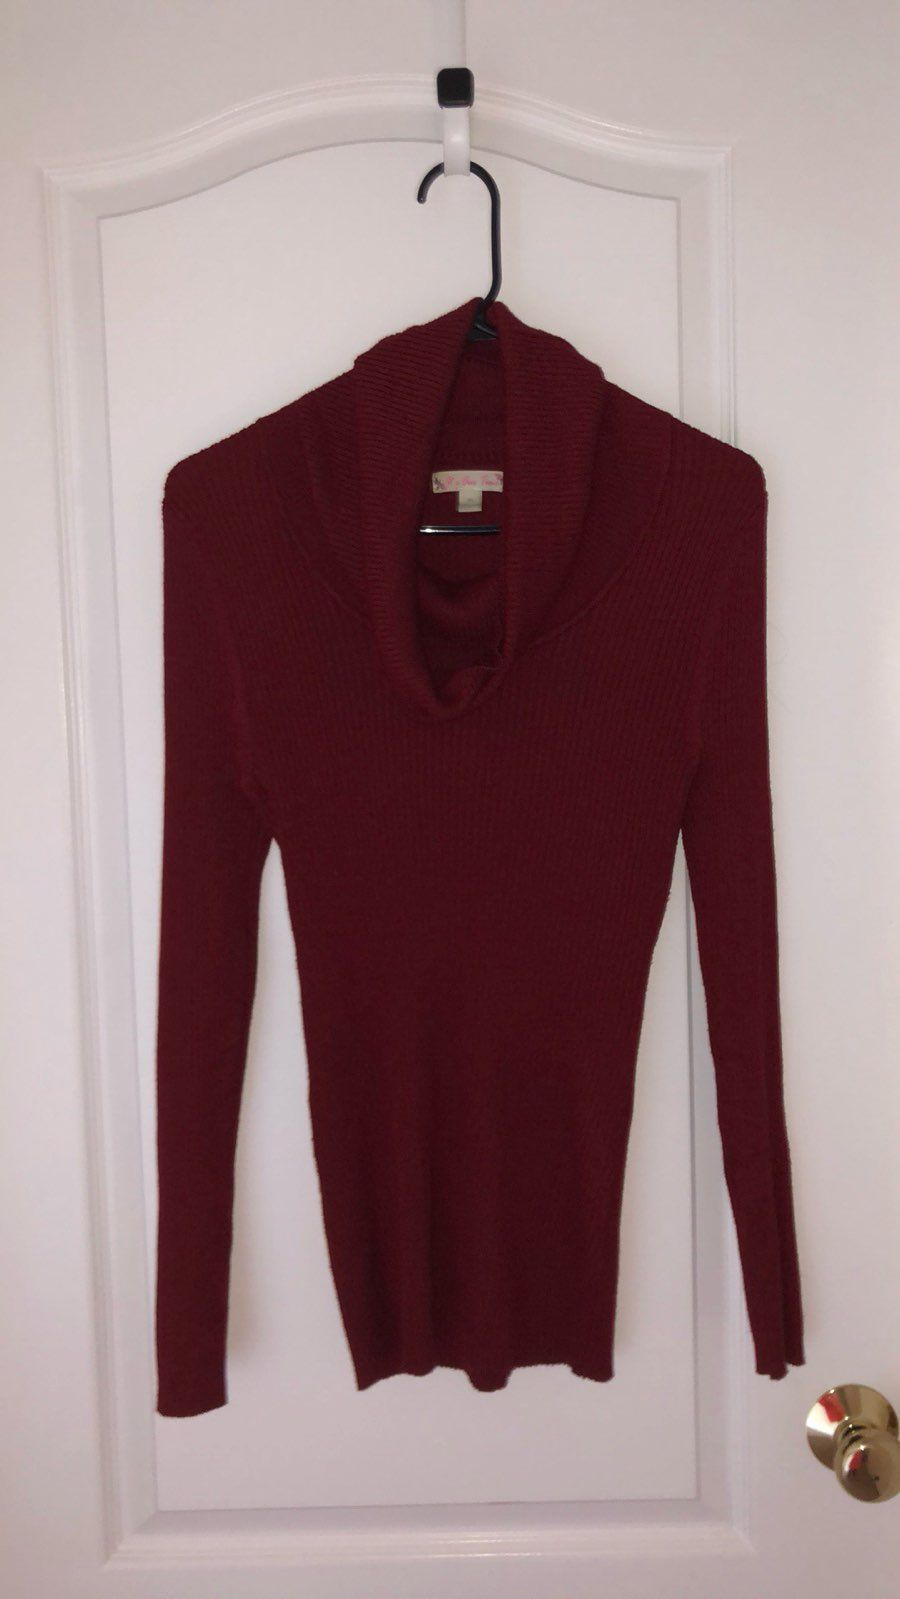 ️LIKE NEW SCOOPNECK RED SWEATER! - Mercari: BUY & SELL THINGS YOU ...